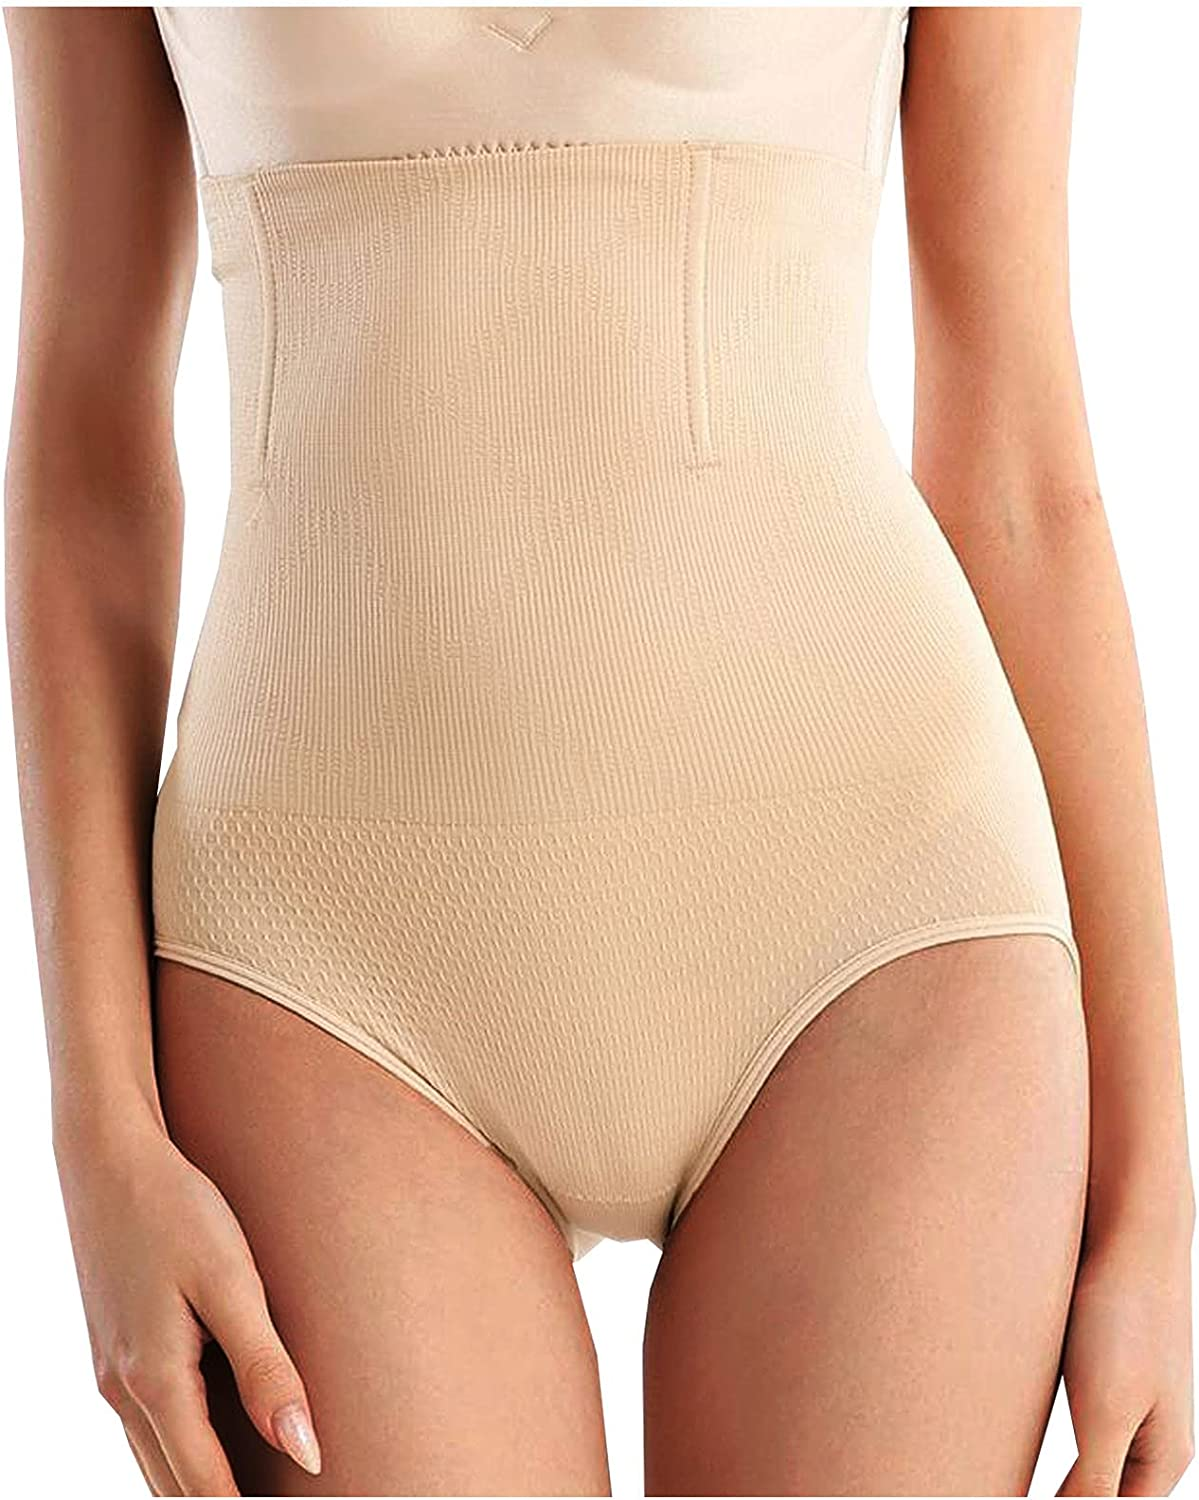 Seamless Shapewear for Women Tummy Control, Women's Butt Lifter Sexy Exposed Buttock Body Shaper Panties Hip Lifting Pants